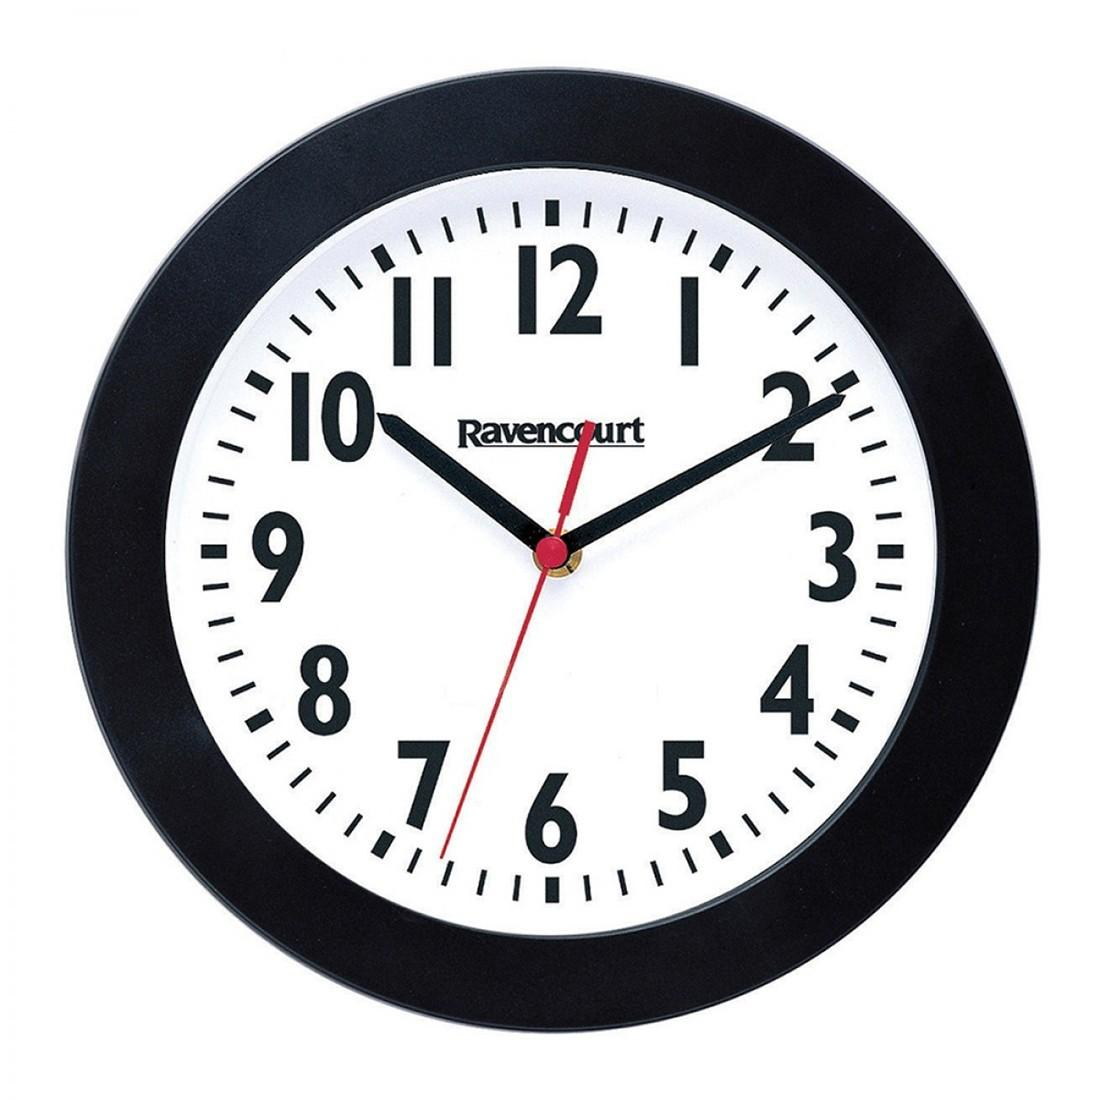 Easy See Wall Clock Buy Cheaply Essential